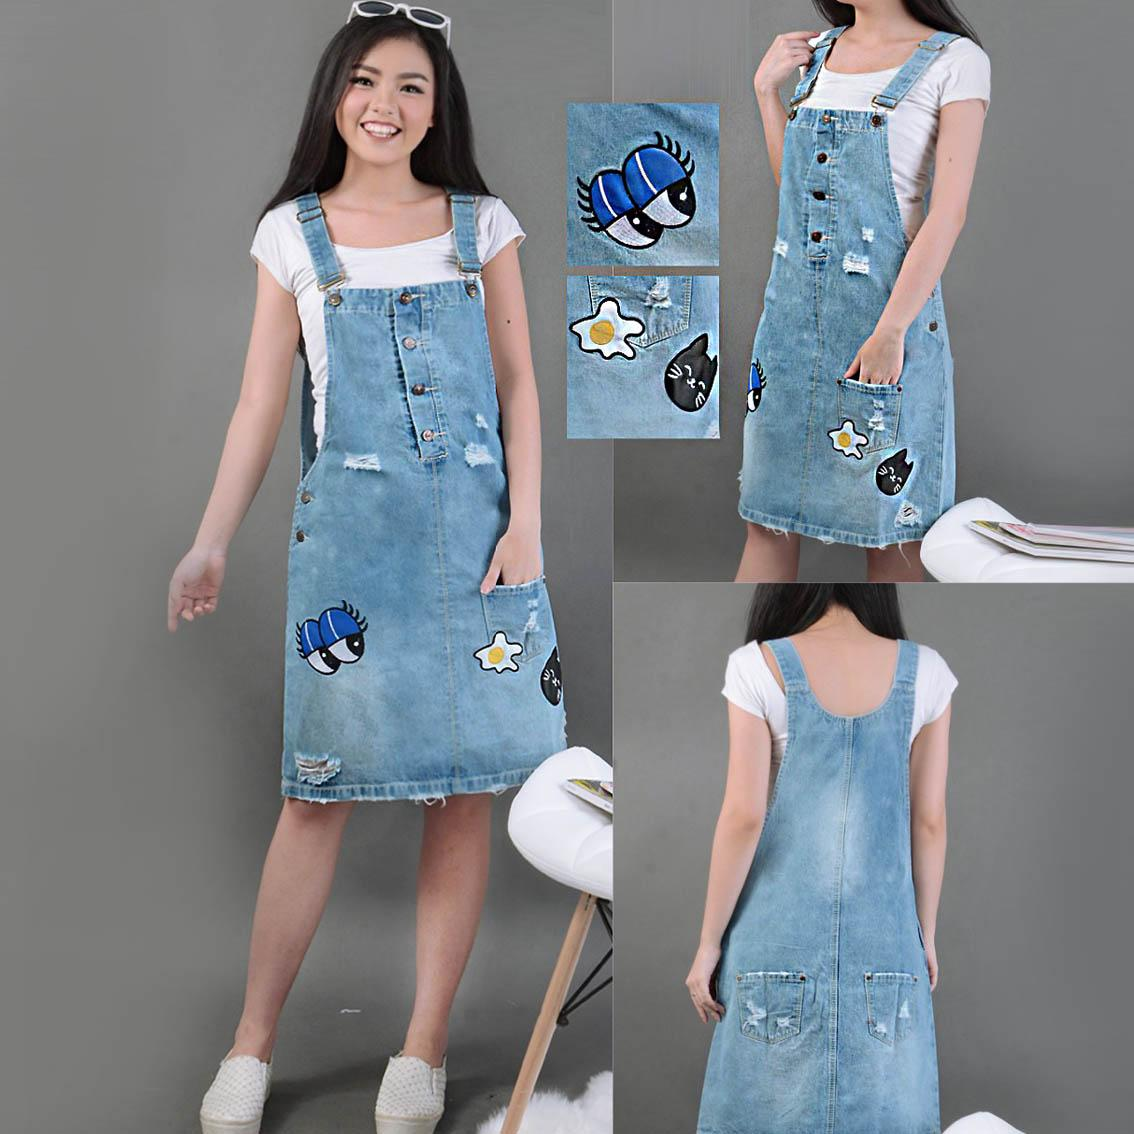 Fashion Atasan tunik  -Dress Overall Jamsuit Jeans - Overall Dress Egg Eye ONE JI18310 - ( Baju Kodok/ Jumpsuit Jeans/ Baju Terusan  )